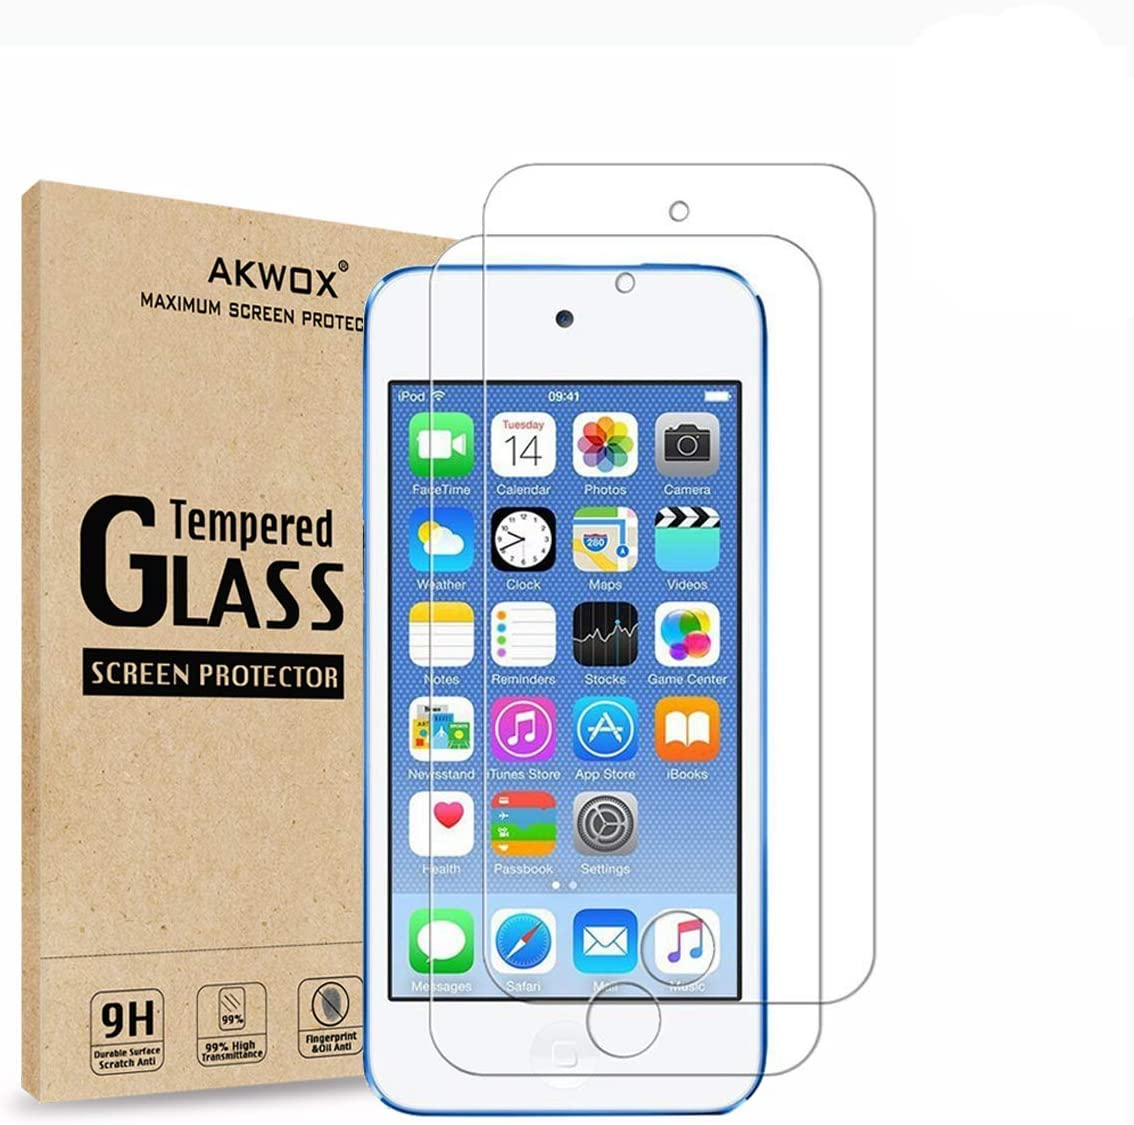 (Pack of 2) [Tempered Glass] Screen Protector for iPod Touch 6G (6th Generation) / 5G (5th Generation), Akwox [0.33mm Ultra Thin 9H Hardness 2.5D Round Edge] with Lifetime Replacement Warranty